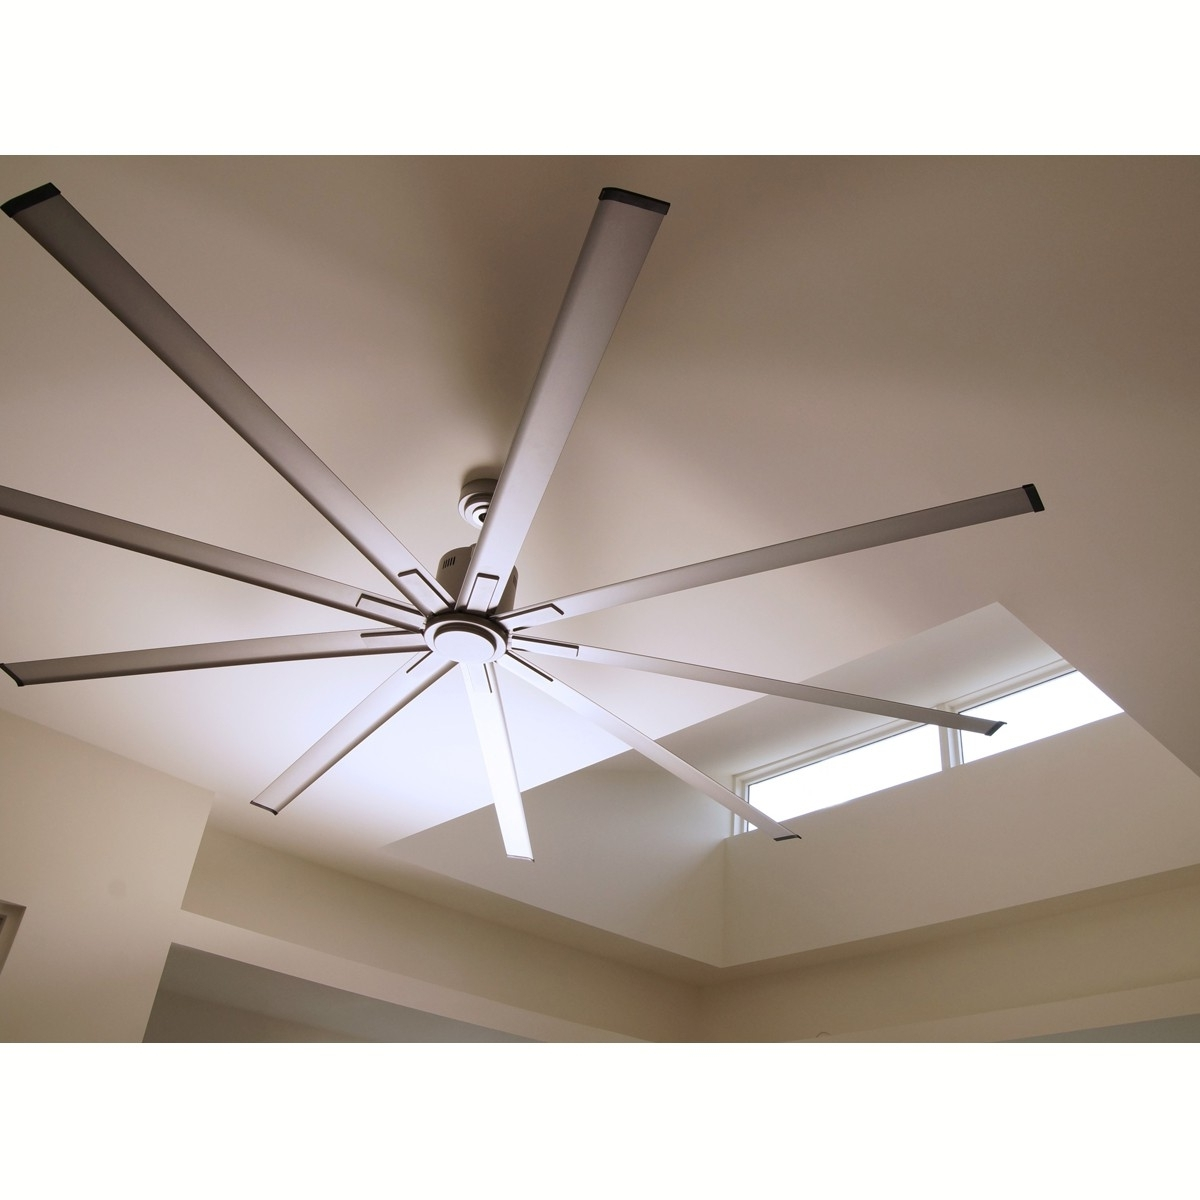 Current 72 Inch Outdoor Ceiling Fans Regarding 20 72 Ceiling Fan, 72 In 8 Blade Brushed Nickel Led Ceiling Fan With (View 7 of 20)